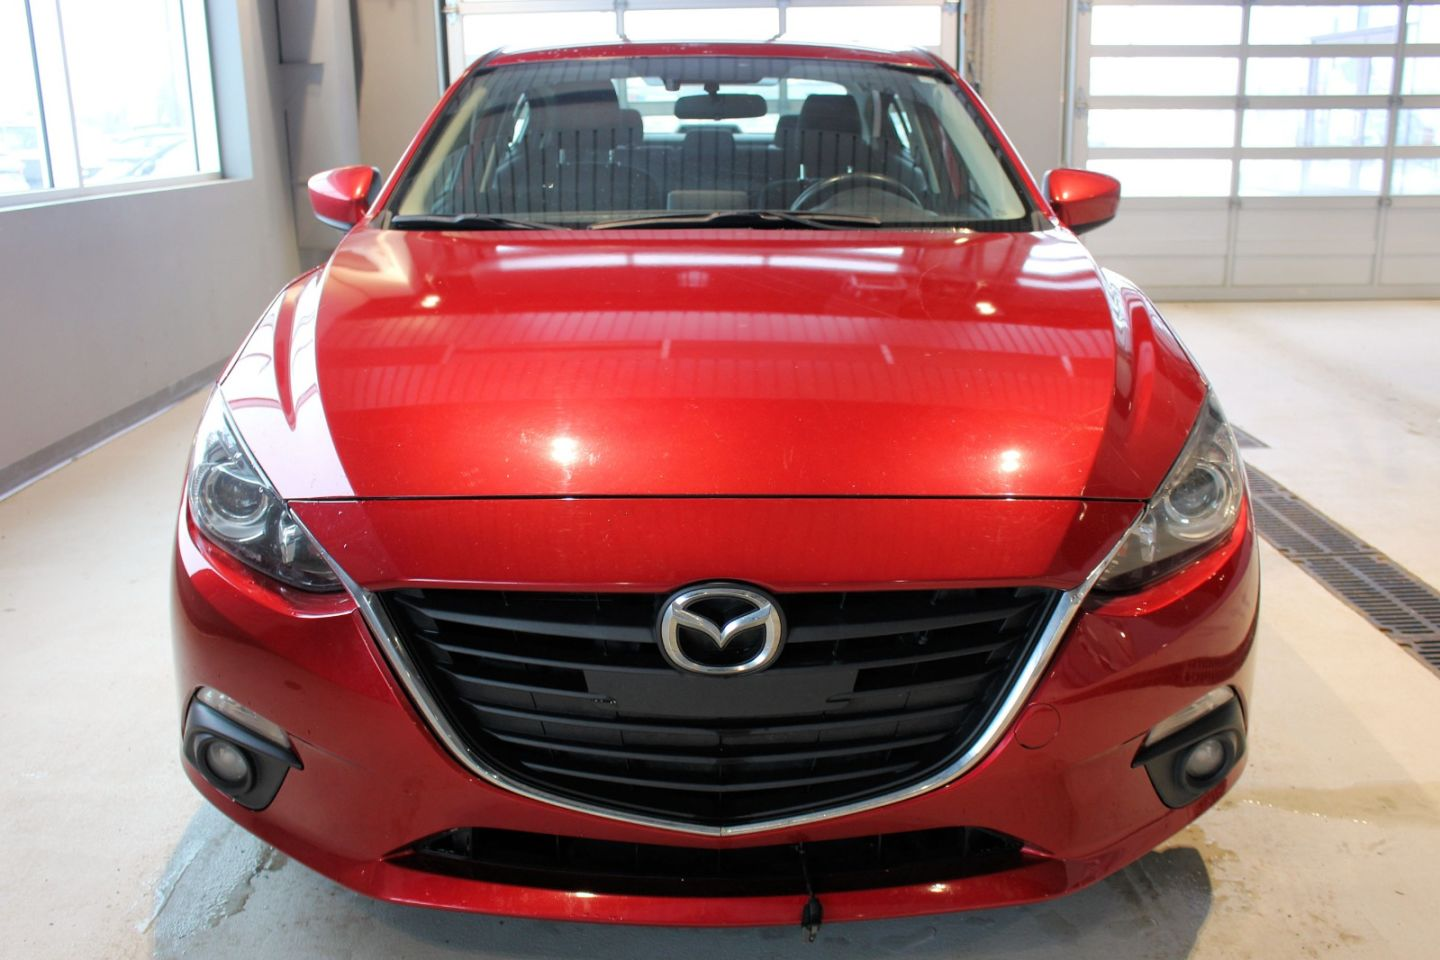 2014 Mazda Mazda3 GS-SKY for sale in Spruce Grove, Alberta